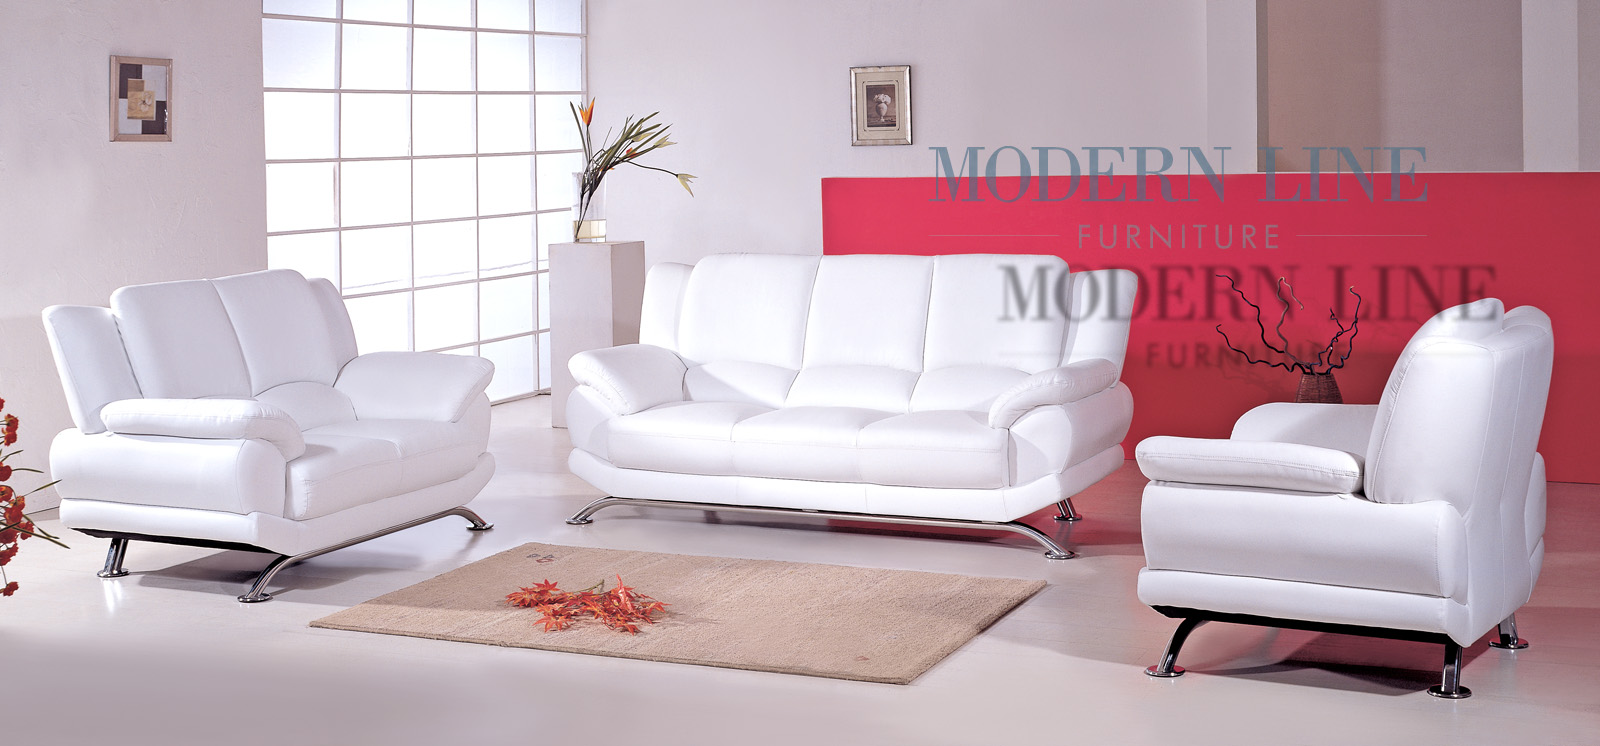 modern line furniture commercial custom made